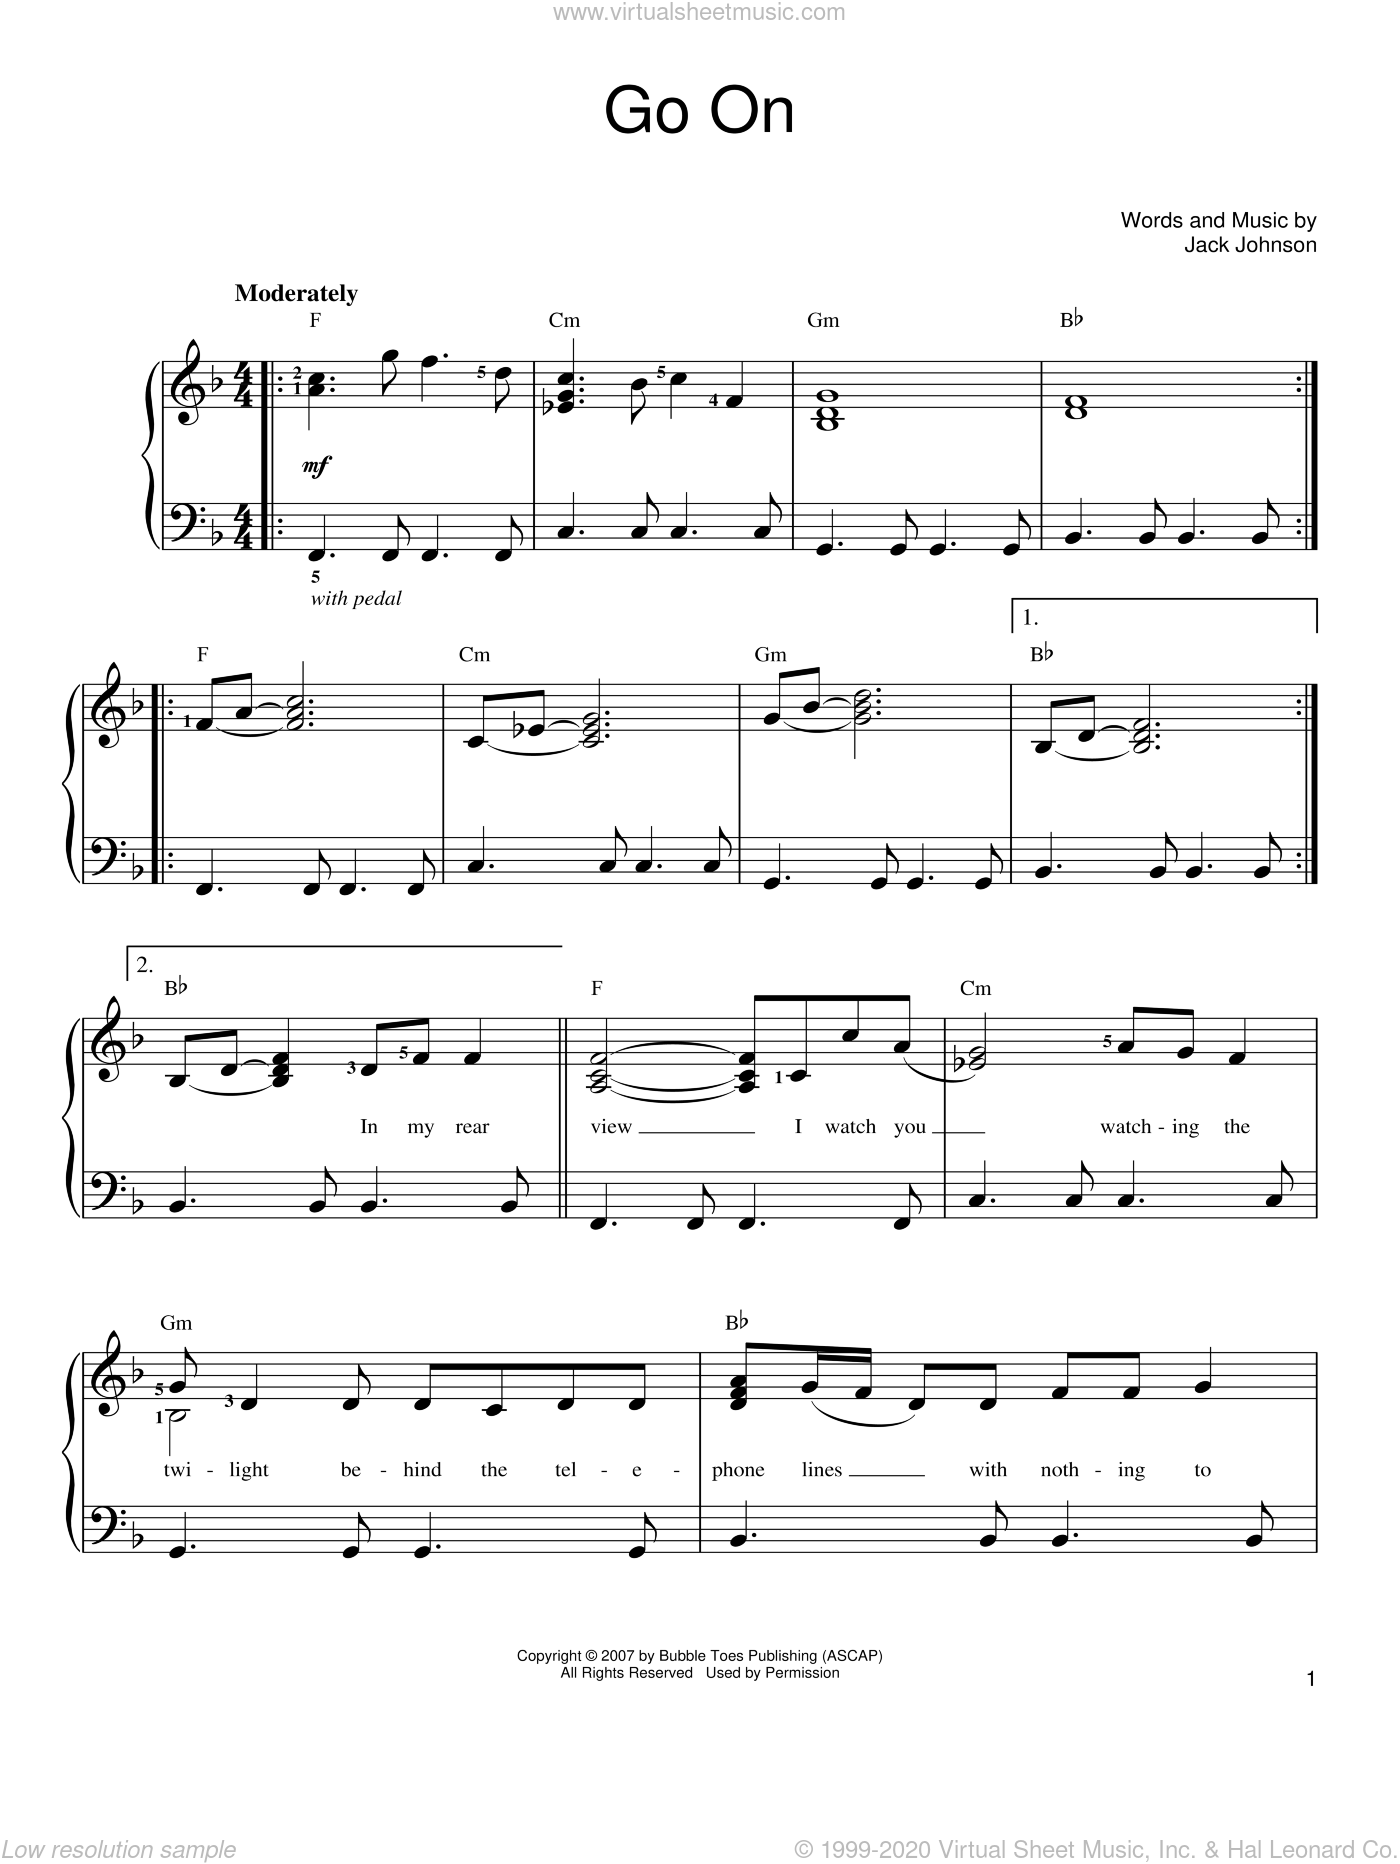 Go On sheet music for piano solo (chords) by Jack Johnson